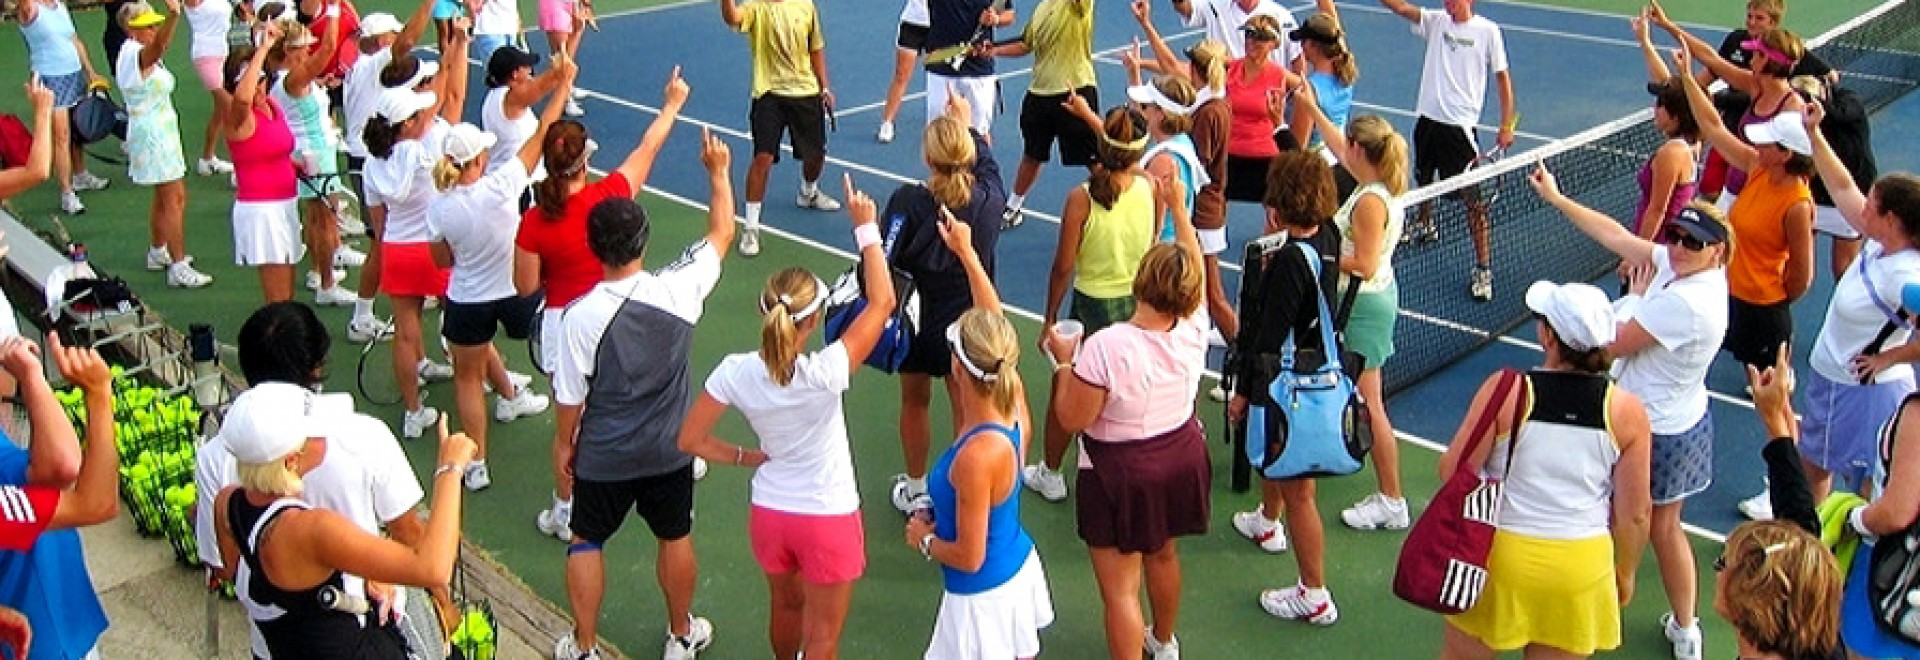 Adult Weekend Tennis Camp - John Newcombe Tennis Ranch, Texas